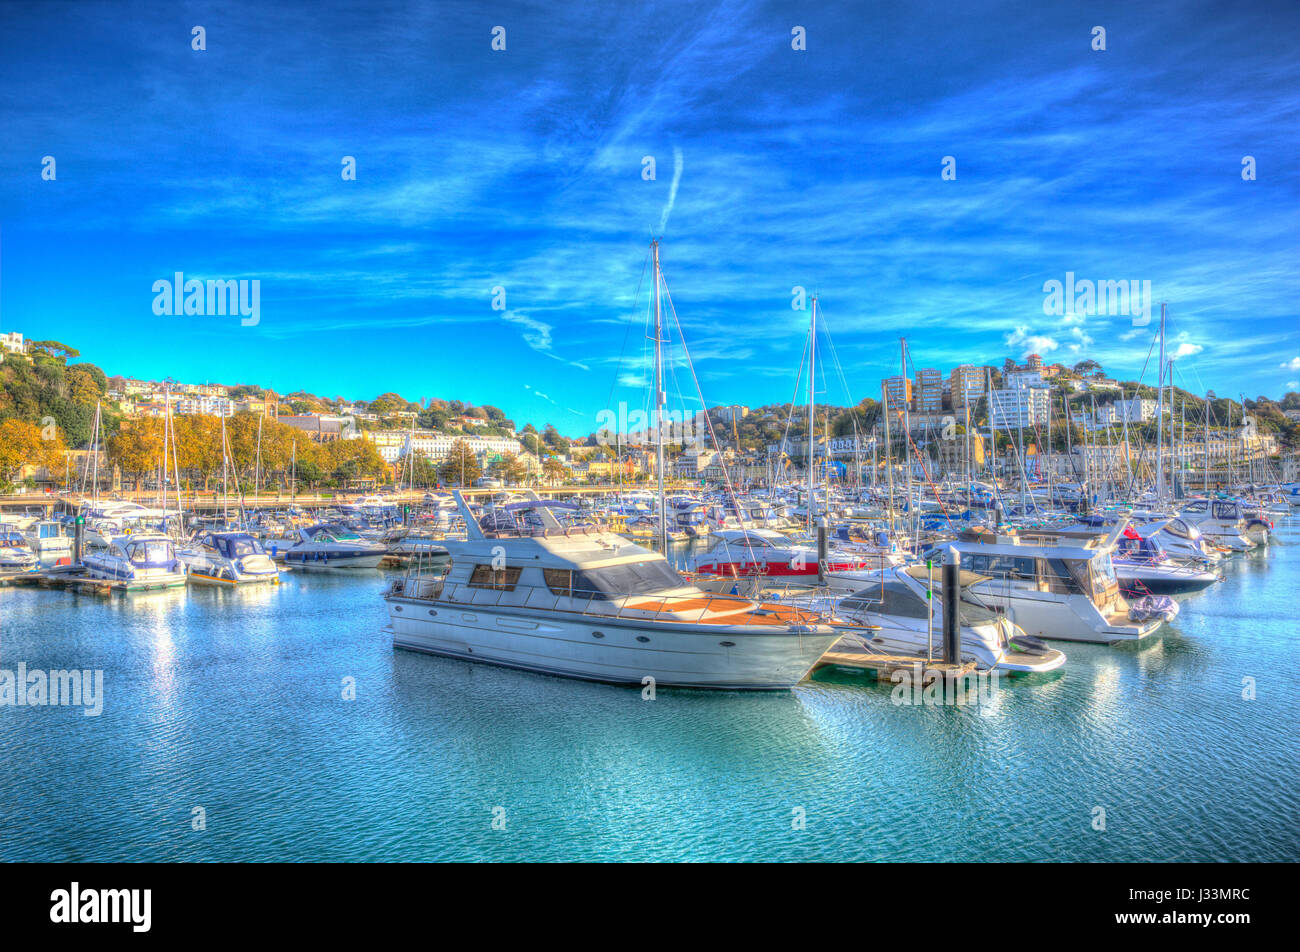 Torquay Devon marina with boats and yachts on beautiful day on the English Riviera in colourful HDR - Stock Image